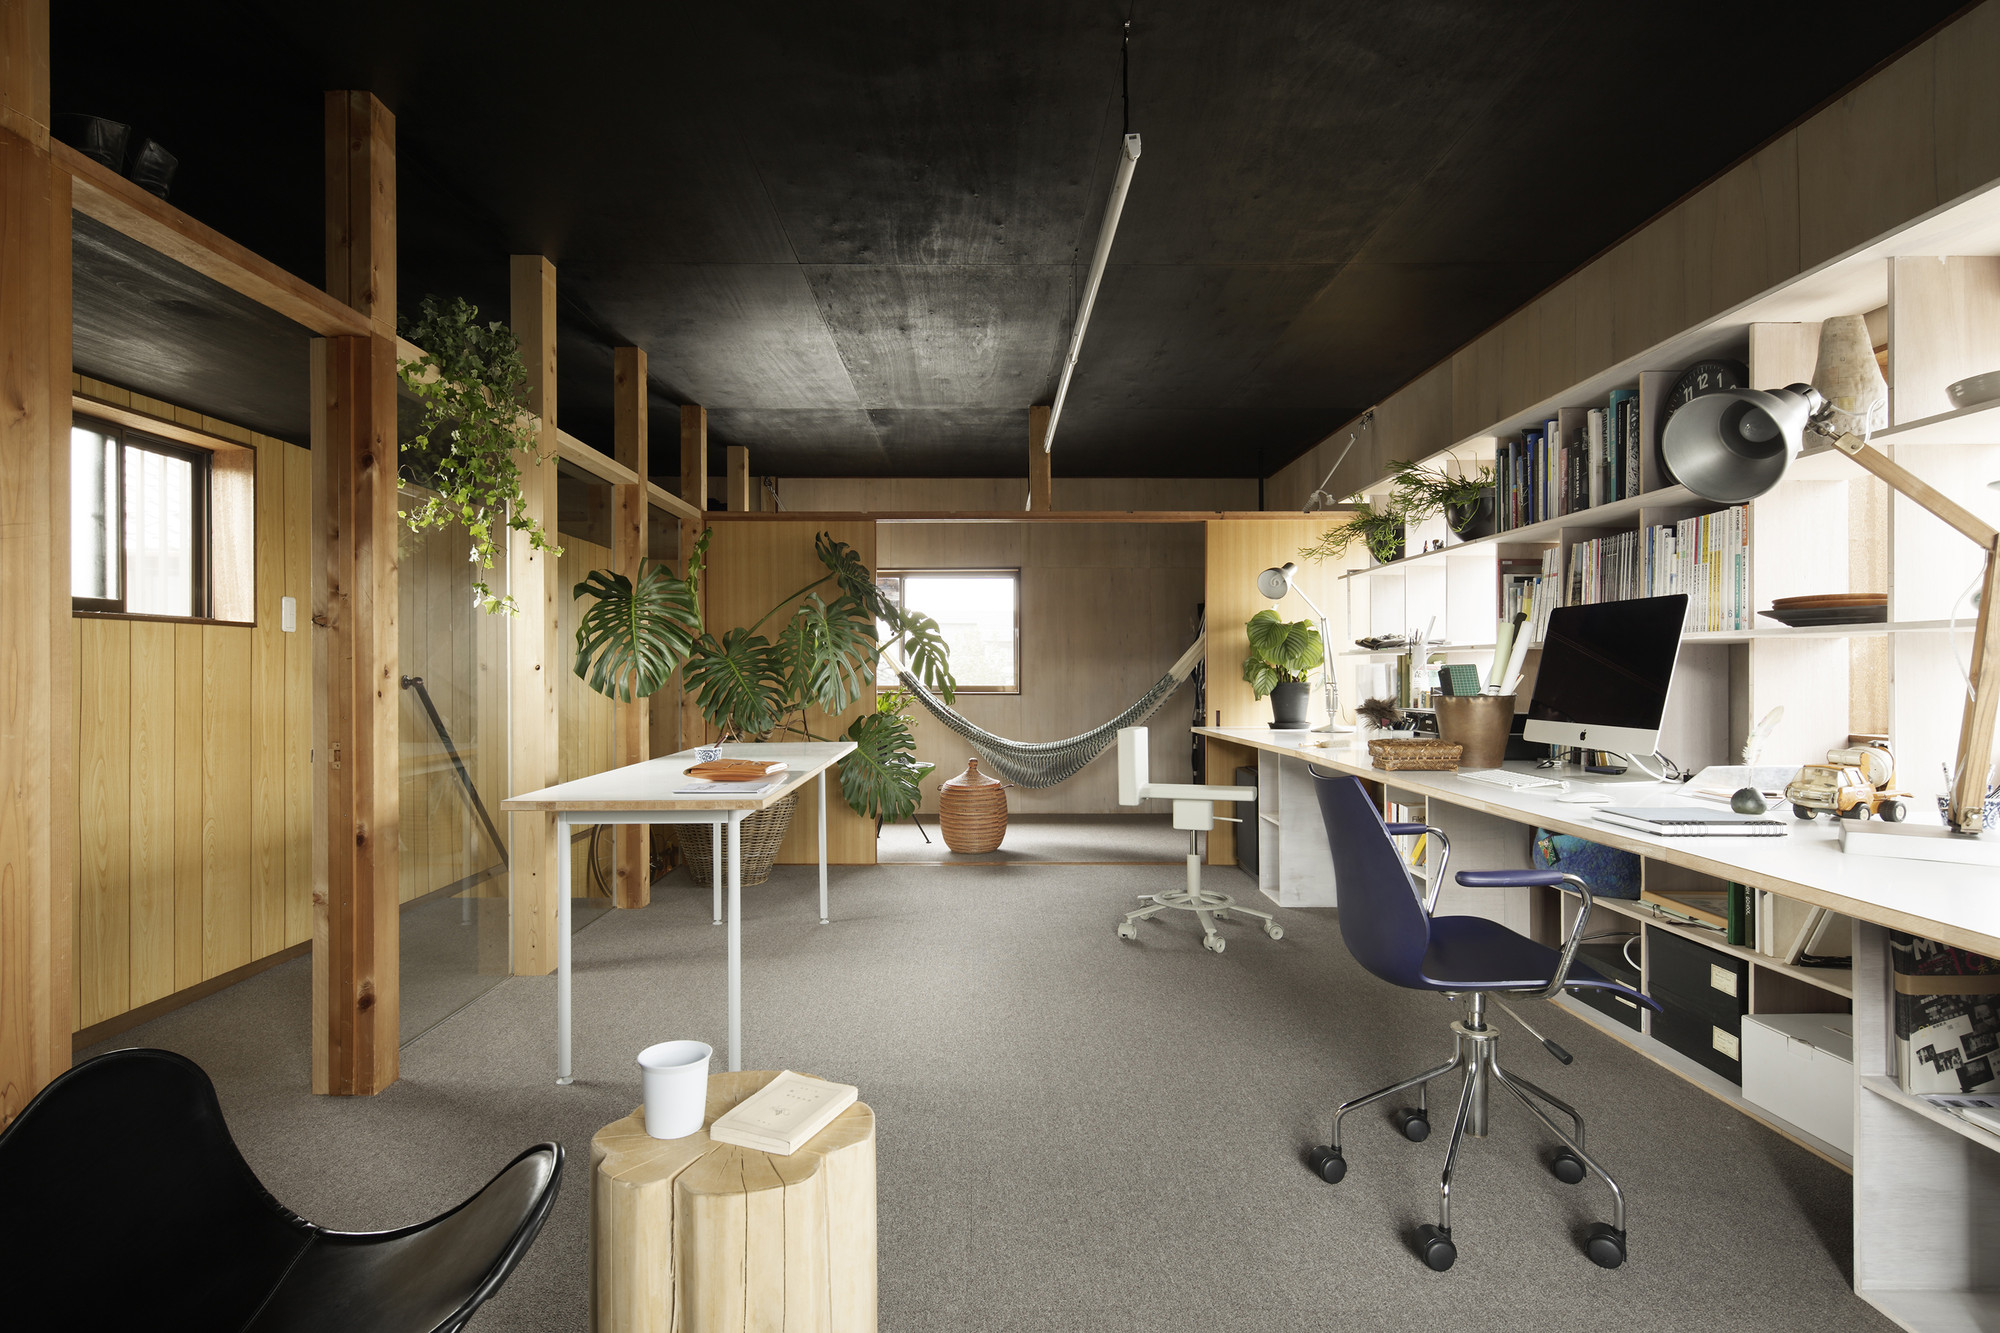 Enzo gallery and office ogawasekkei archdaily for Office design archdaily